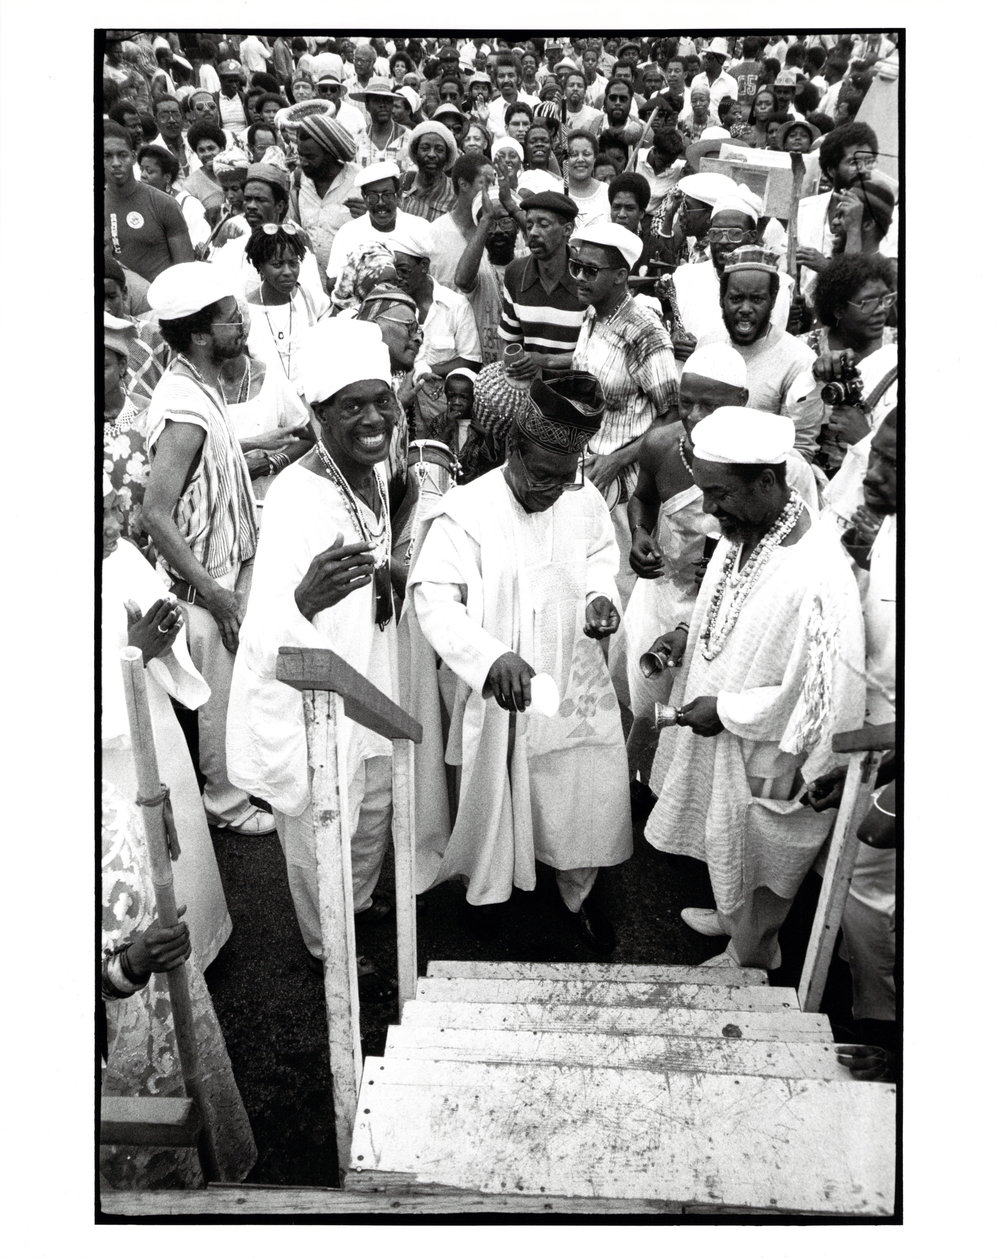 Babatunde Olatunji pours libation at the Odunde Festival (Philadelphia, 1984). Photo: Thomas B. Morton